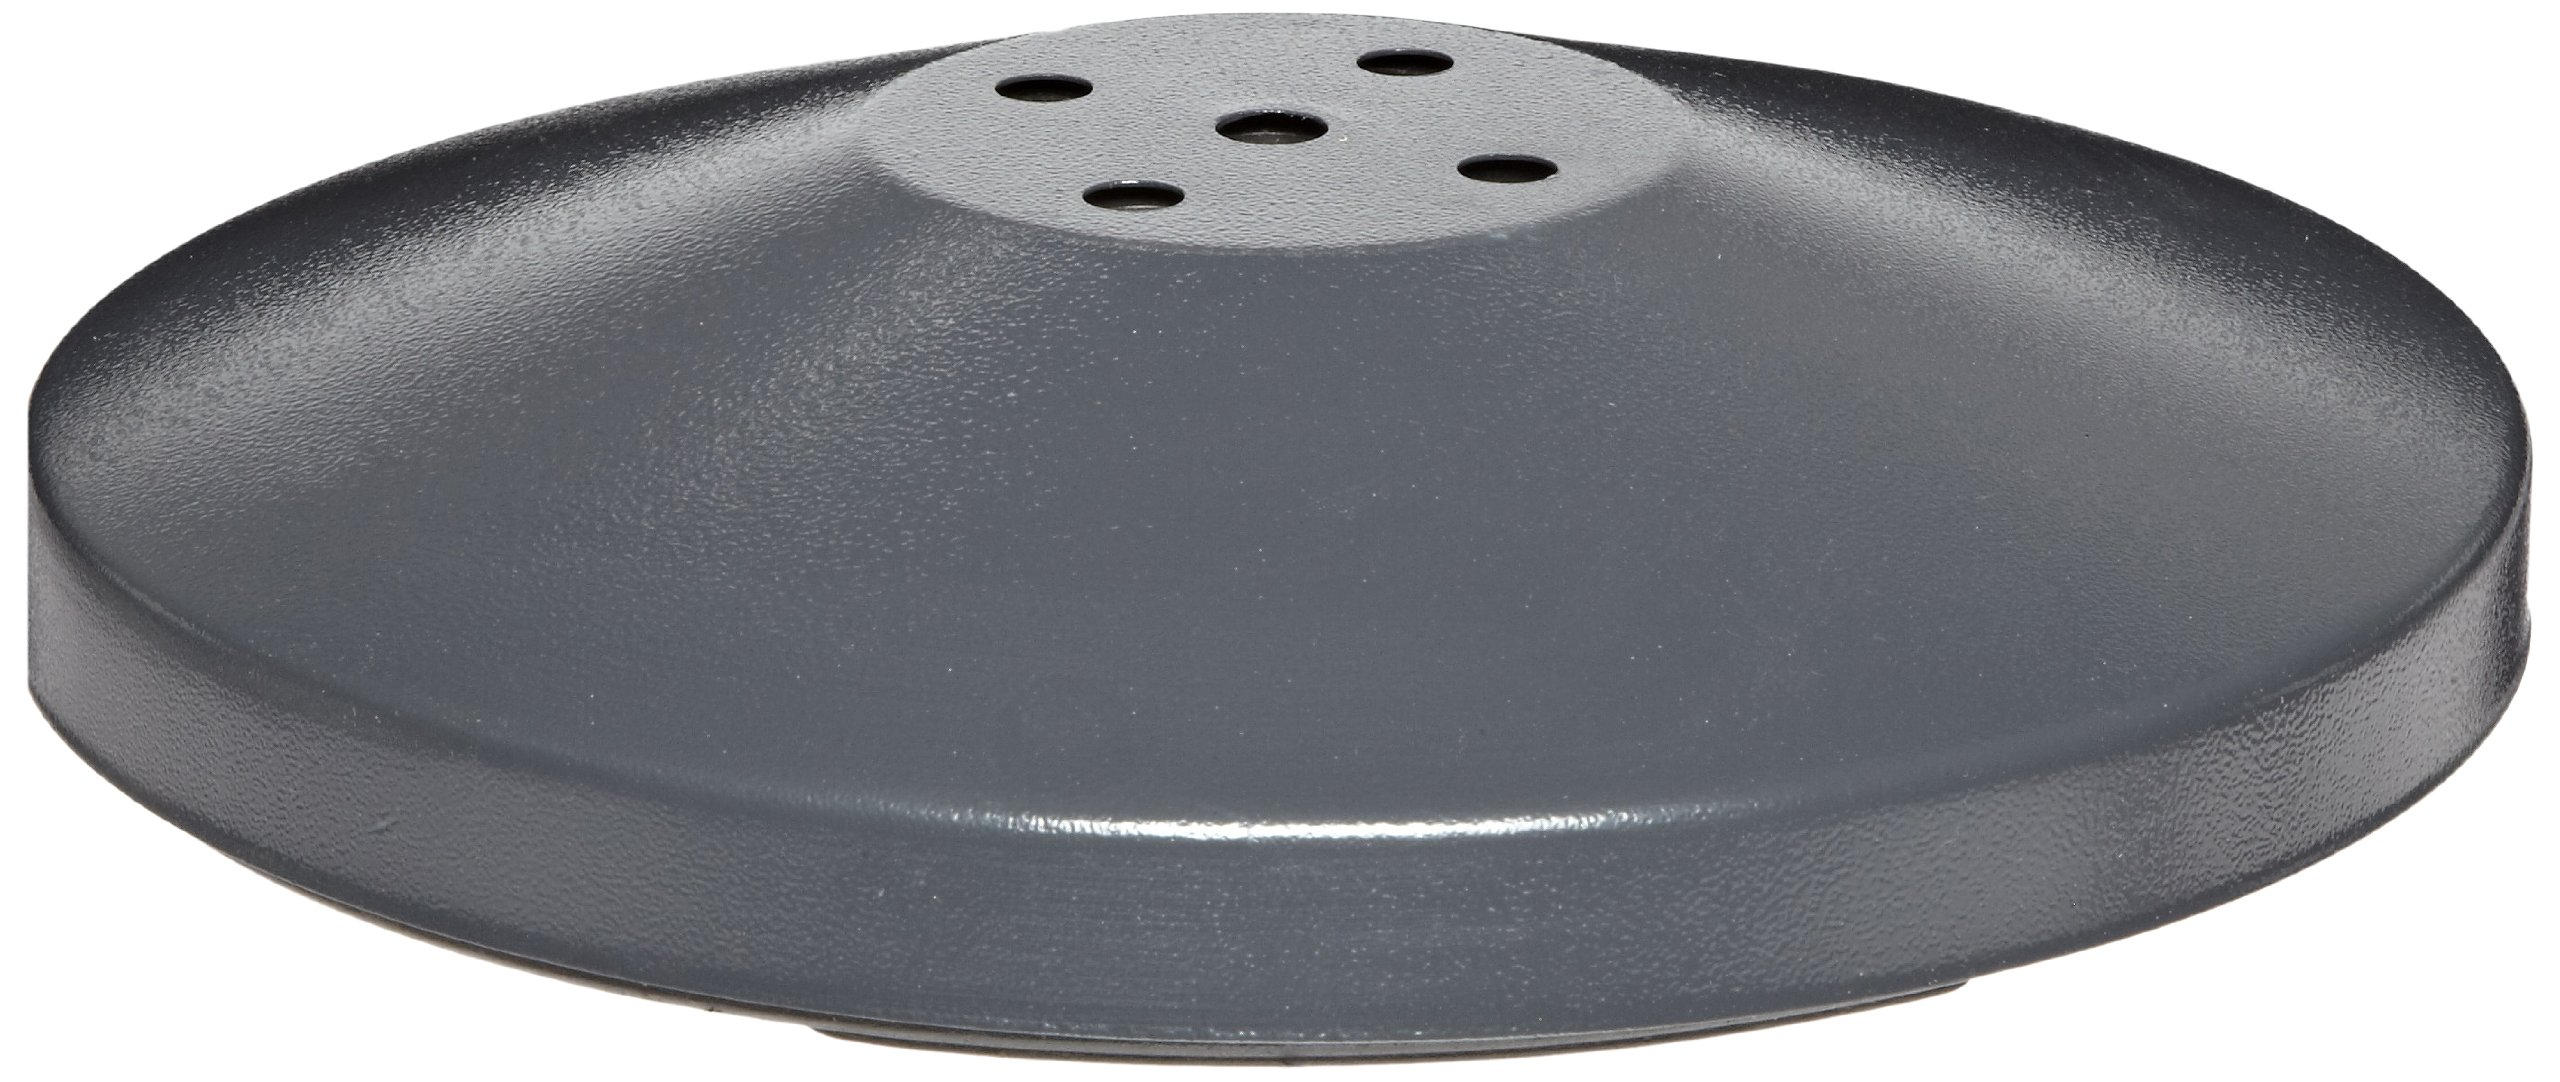 Impact 4454BS Tube Base, 11-3/4'' Diameter x 2-1/4'' Height, For Stand Alone Ashtray, Gray (Case of 2)